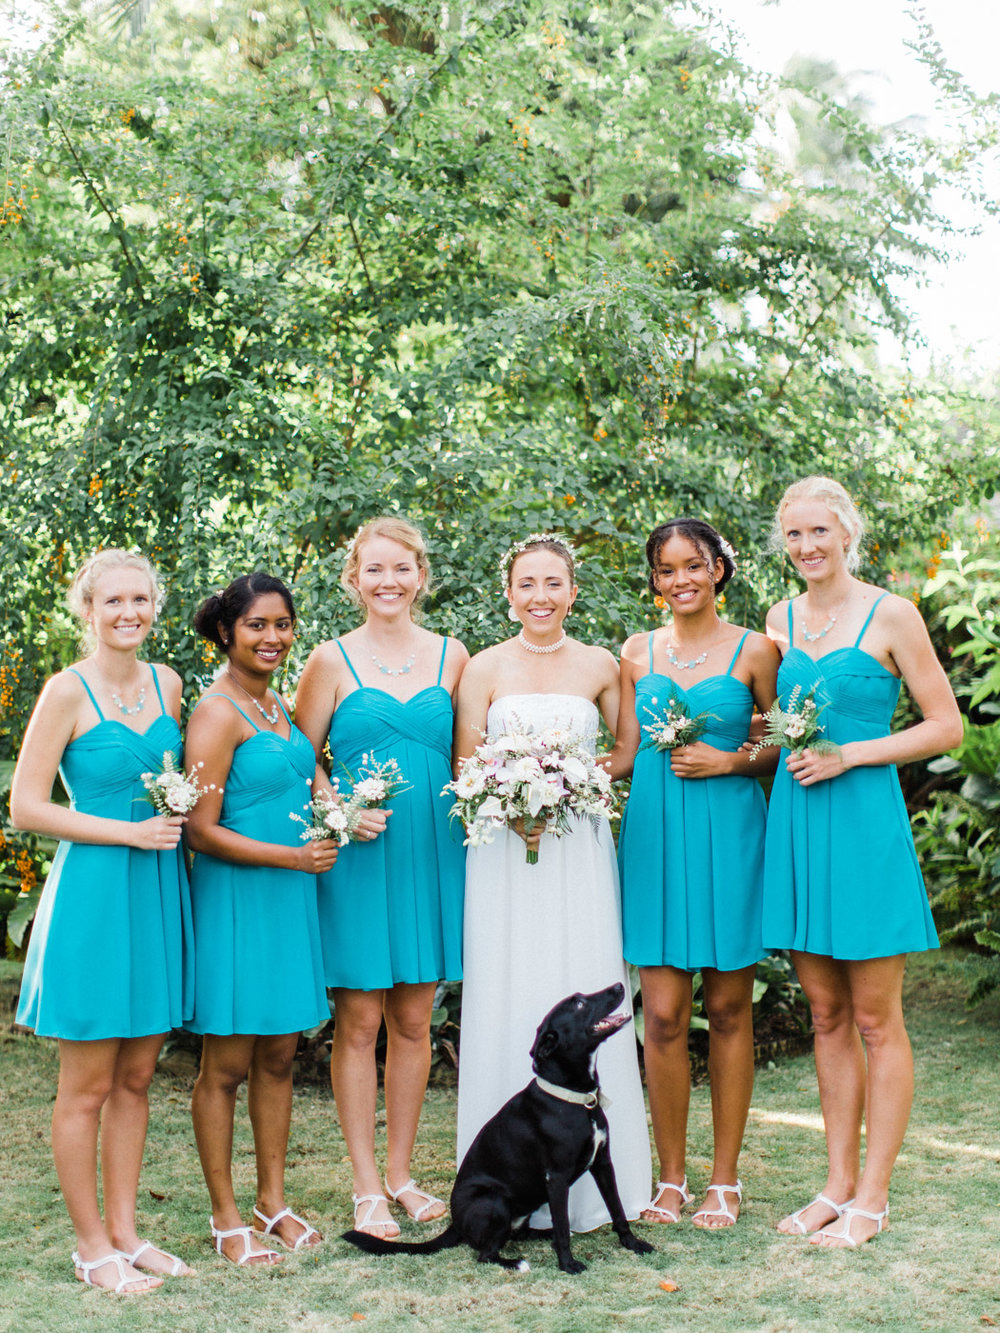 Include_dogs_in_your_wedding_photographs4.jpg